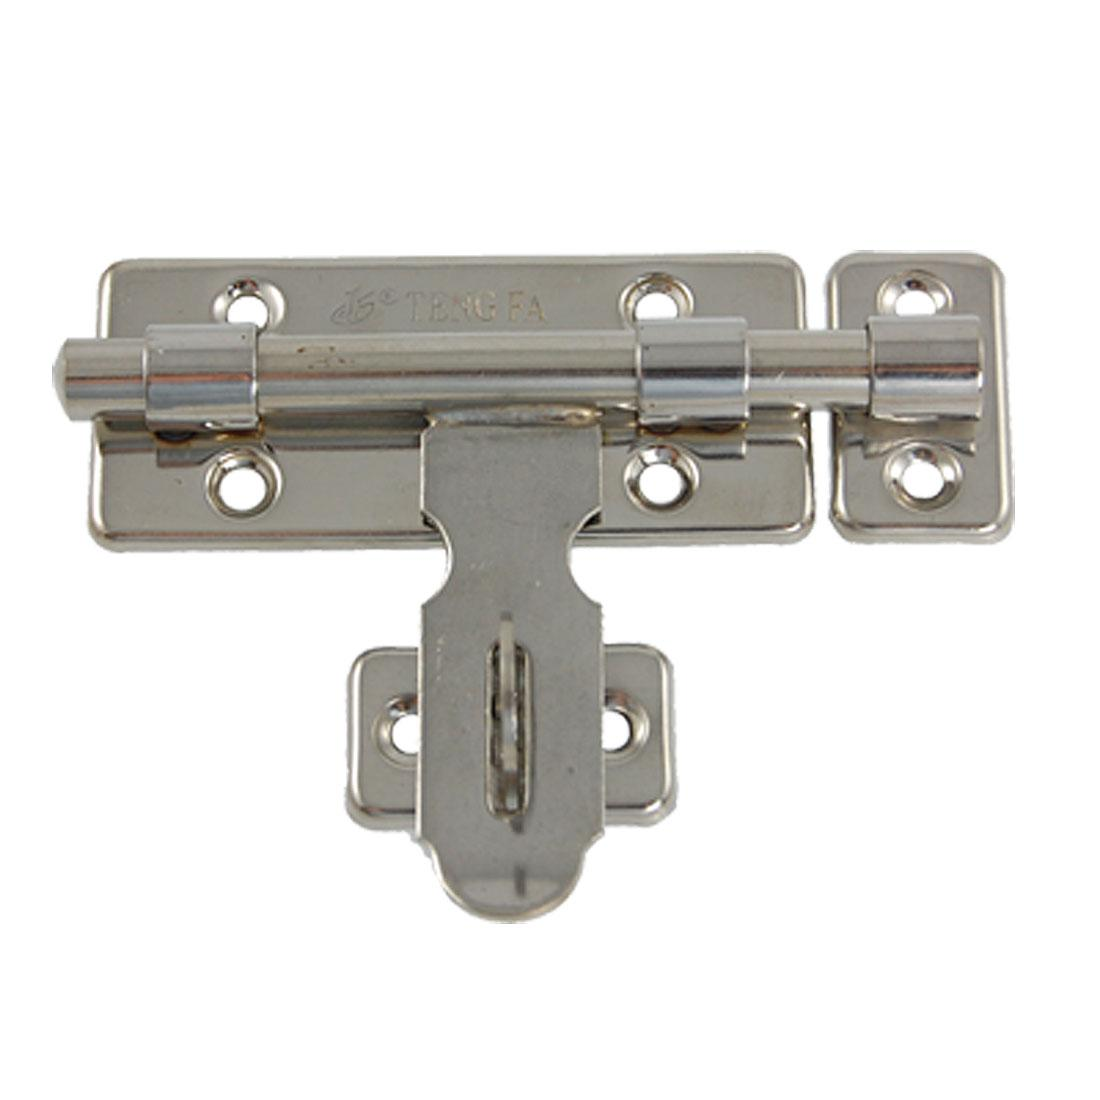 2018 Hardware Door Lock Barrel Bolt Latch Padlock Clasp Set From Ux_mall $5.99 | Dhgate.Com  sc 1 st  DHgate.com & 2018 Hardware Door Lock Barrel Bolt Latch Padlock Clasp Set From ...